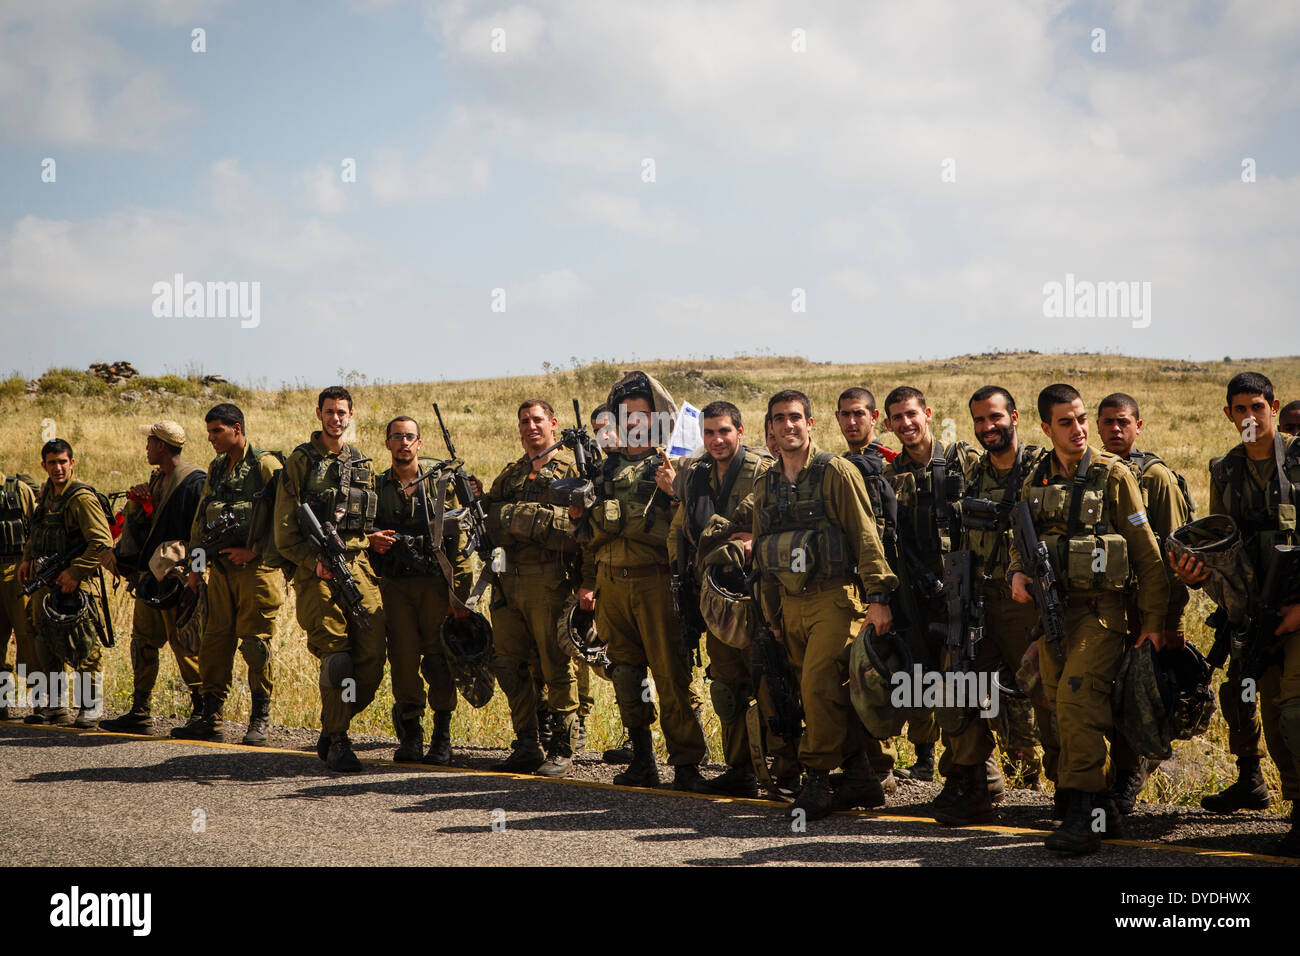 Israeli soldiers at the Golan Heights, Israel. - Stock Image